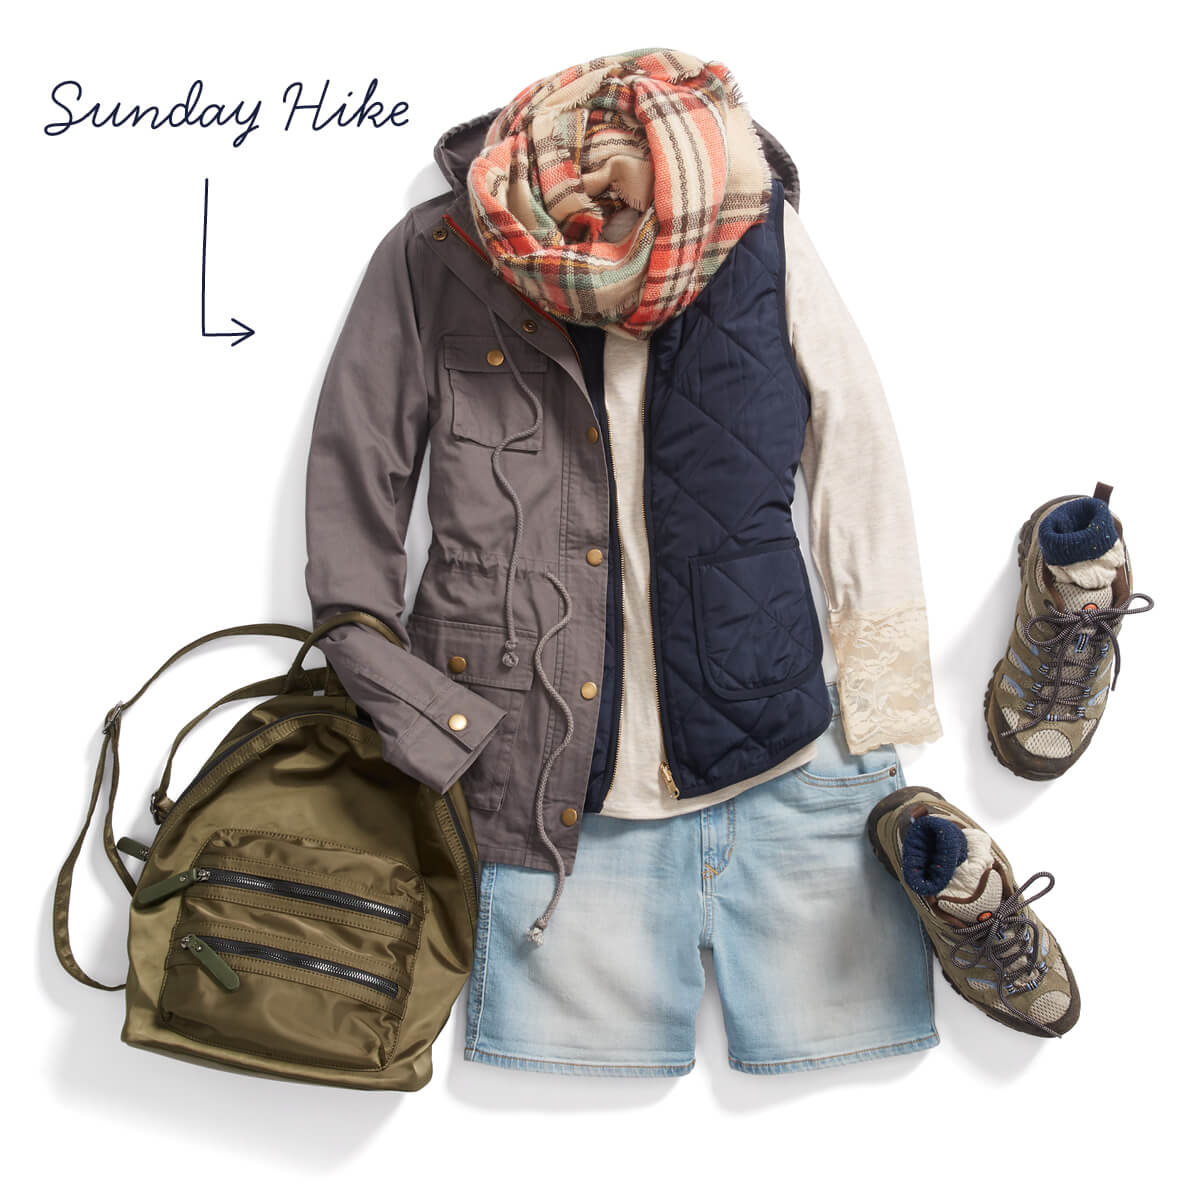 5 Date Outfit Ideas: From The Movies To A Sunday Hike